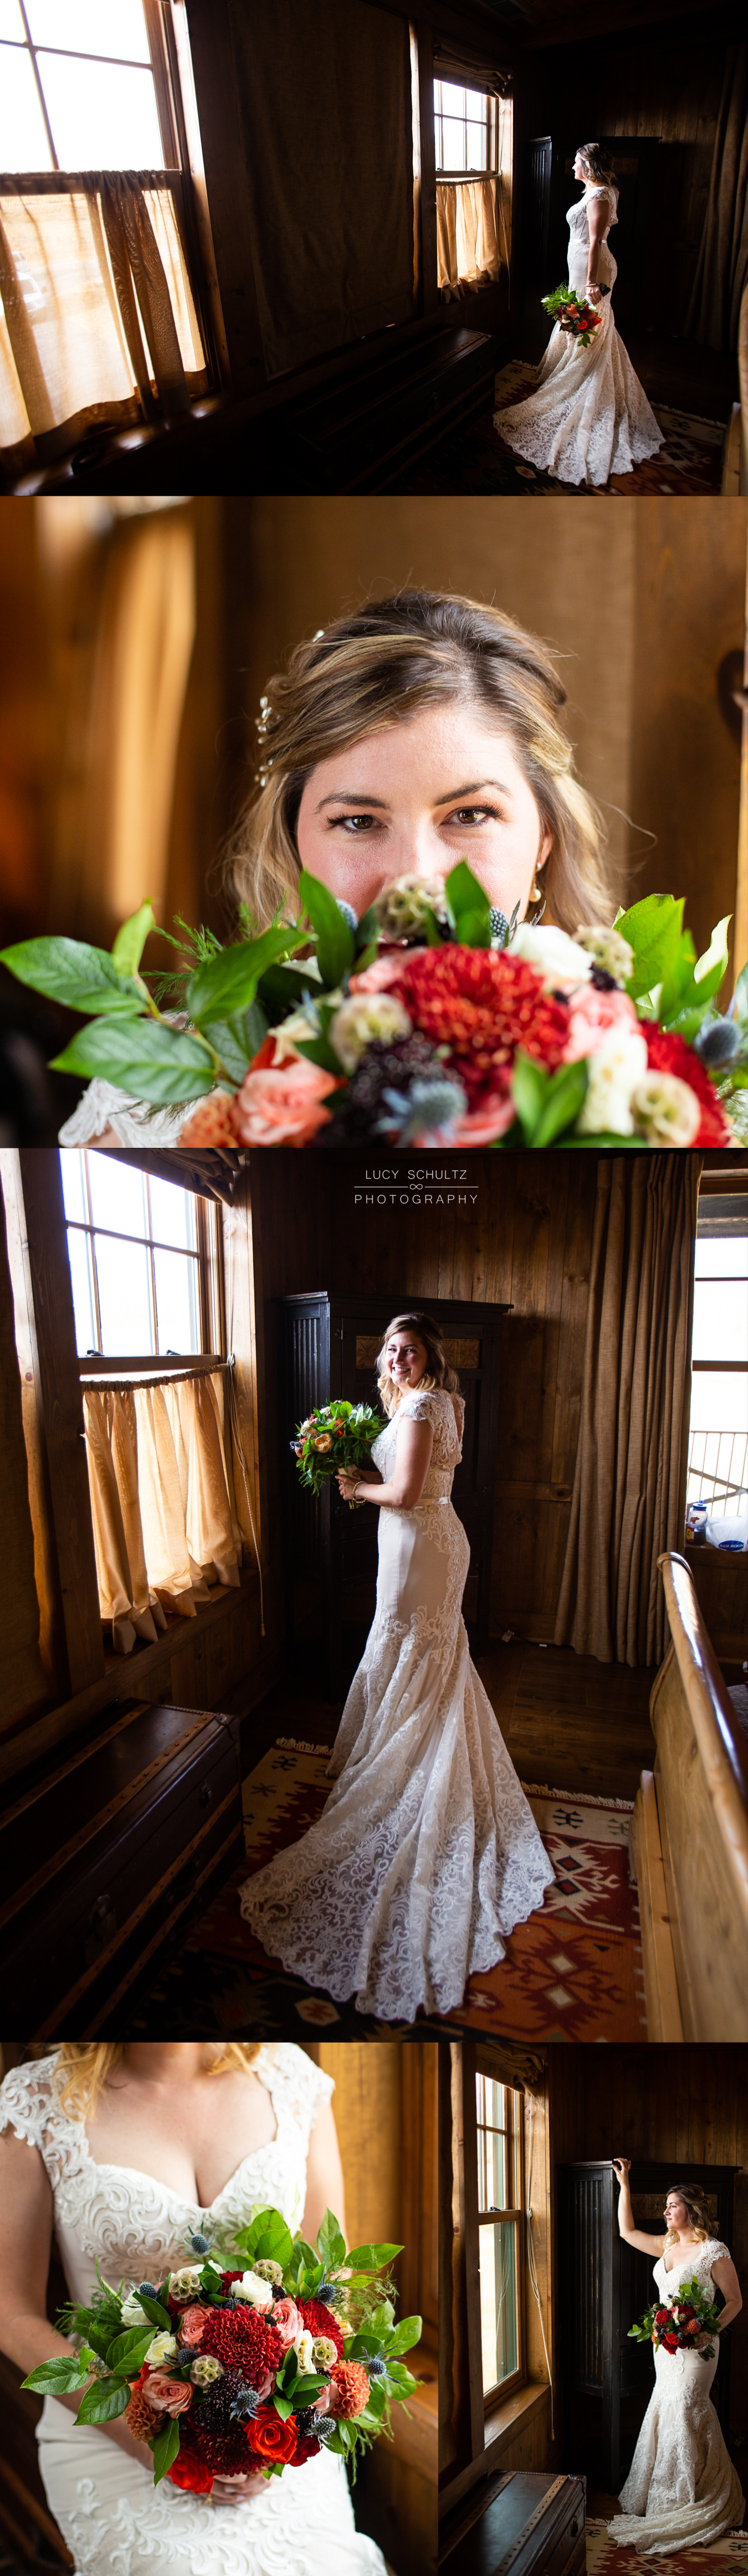 06BeautifulBrideDevilsThumbRanchWeddingPhotographer